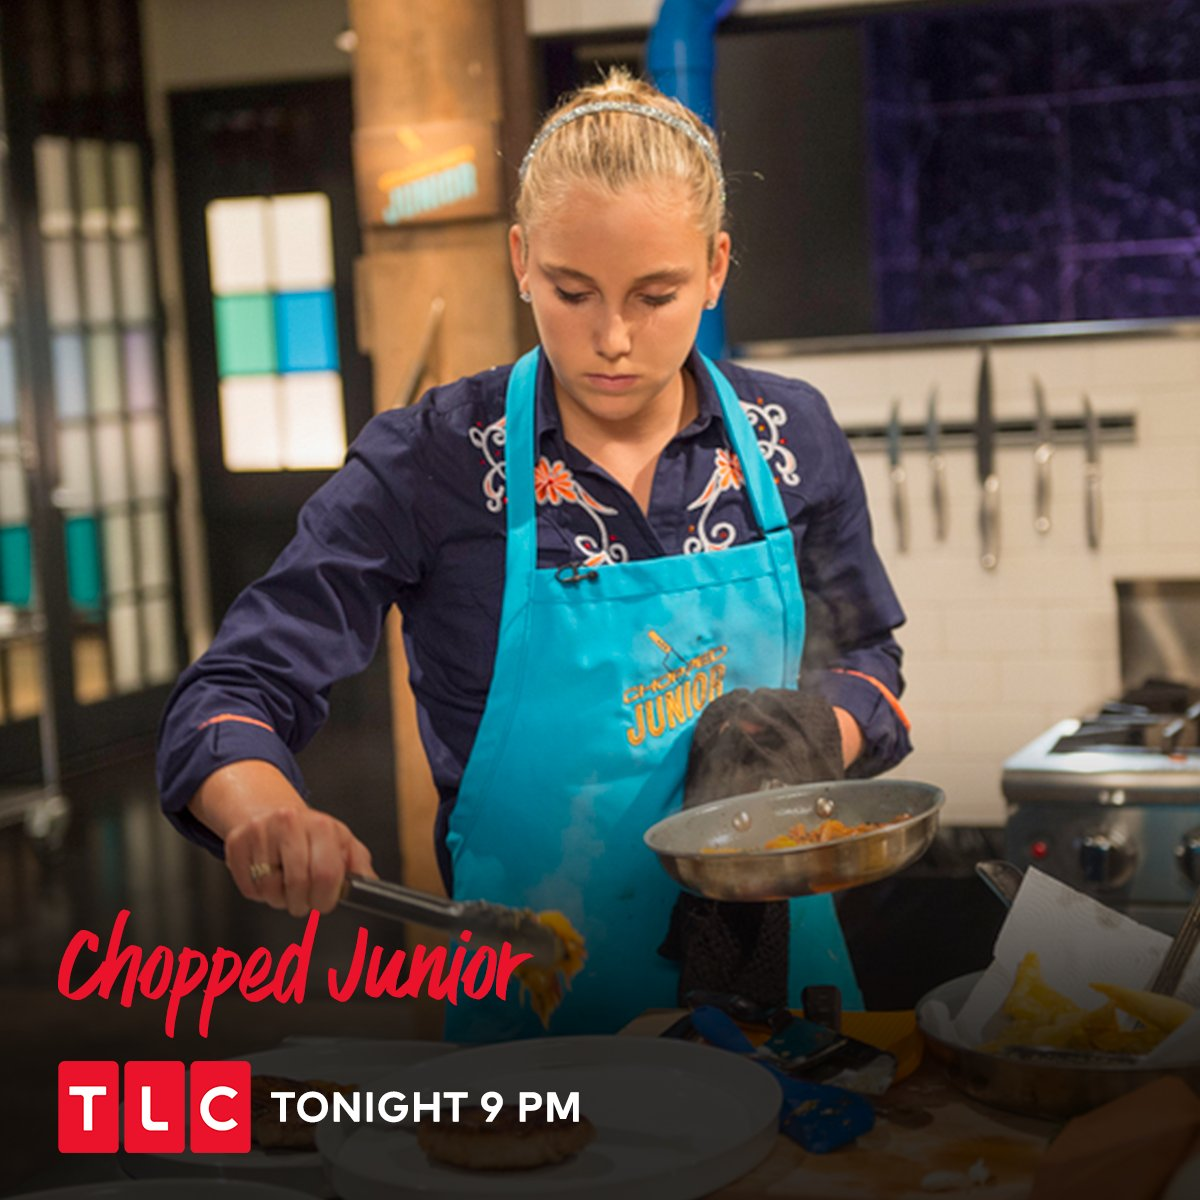 An odd combination of sugar and fish throws the young chefs off their game. Find out who gets through the storm! Watch #ChoppedJunior, tonight at 9 PM, only on TLC.   #TLC #TLCIndia #food #foodlove #chefs #kids #kidchefs #foodies<br>http://pic.twitter.com/u7fv76dOGy